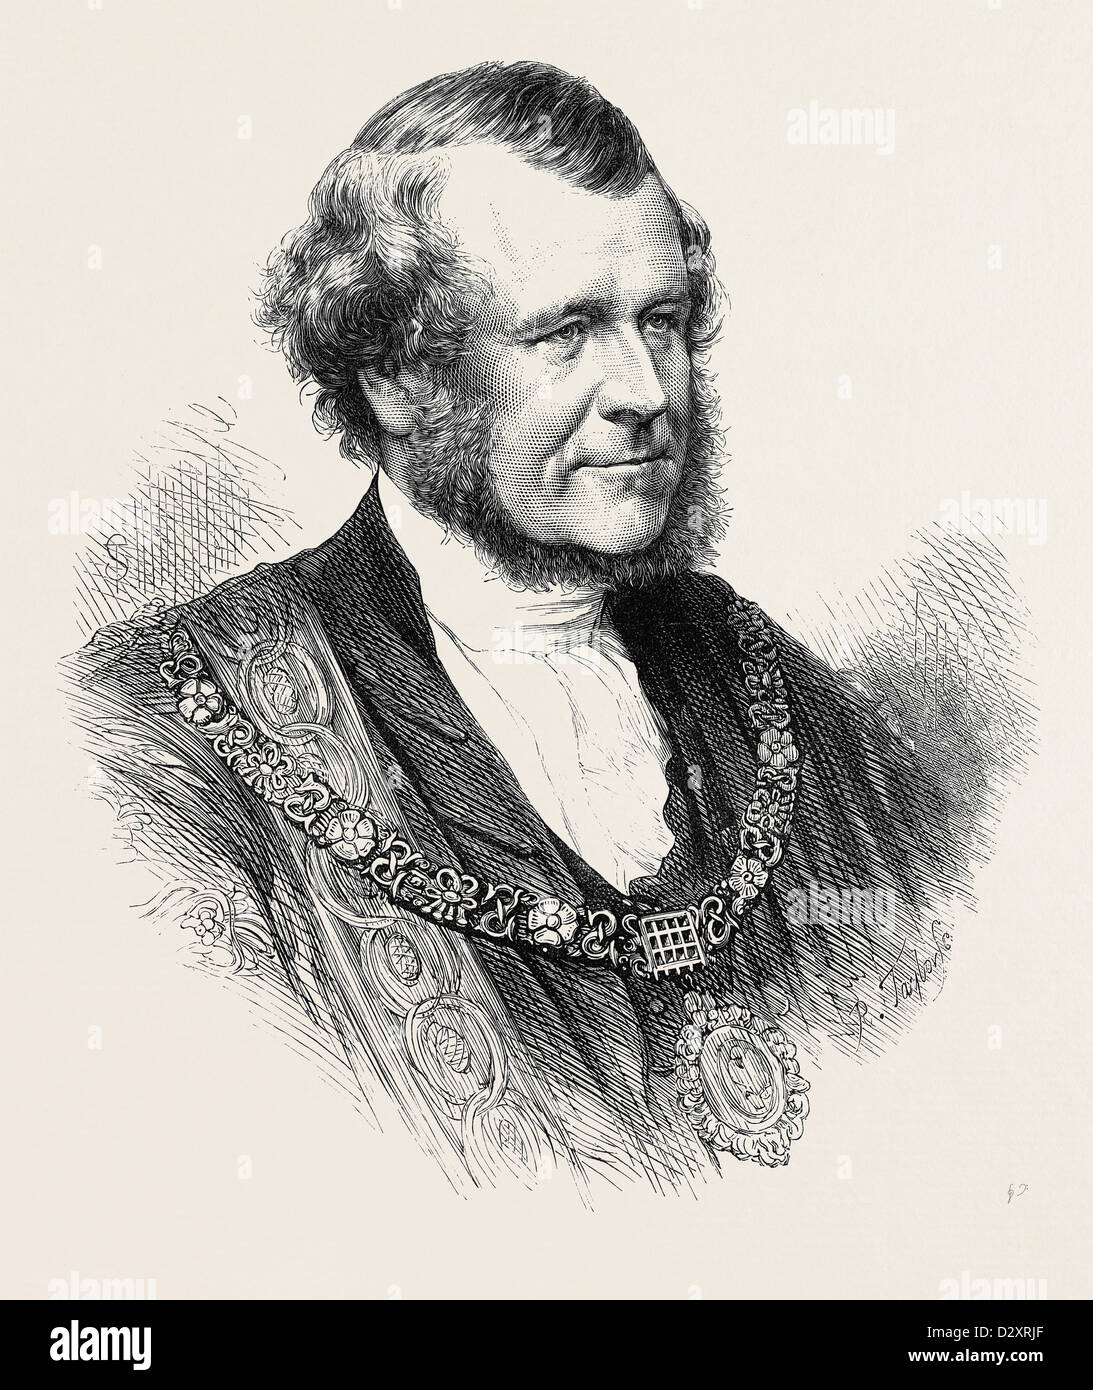 THE RIGHT HON. SILLS JOHN GIBBONS THE NEW LORD MAYOR OF LONDON 1871 - Stock Image